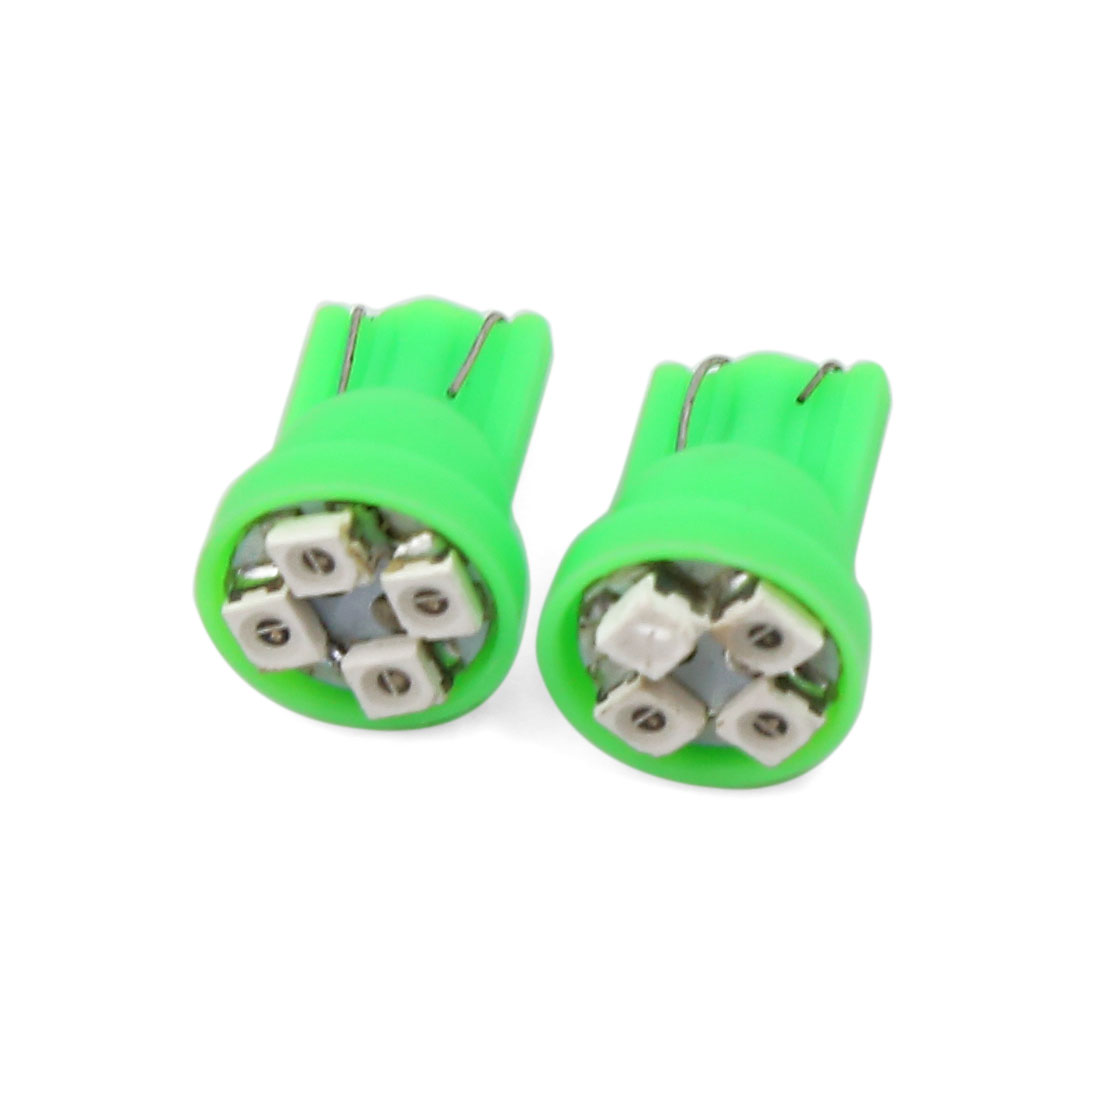 Car T10 W5W 259 Green 1210 SMD 4 LED Bulb Dashboard Light Lamp 2 Pcs Interior